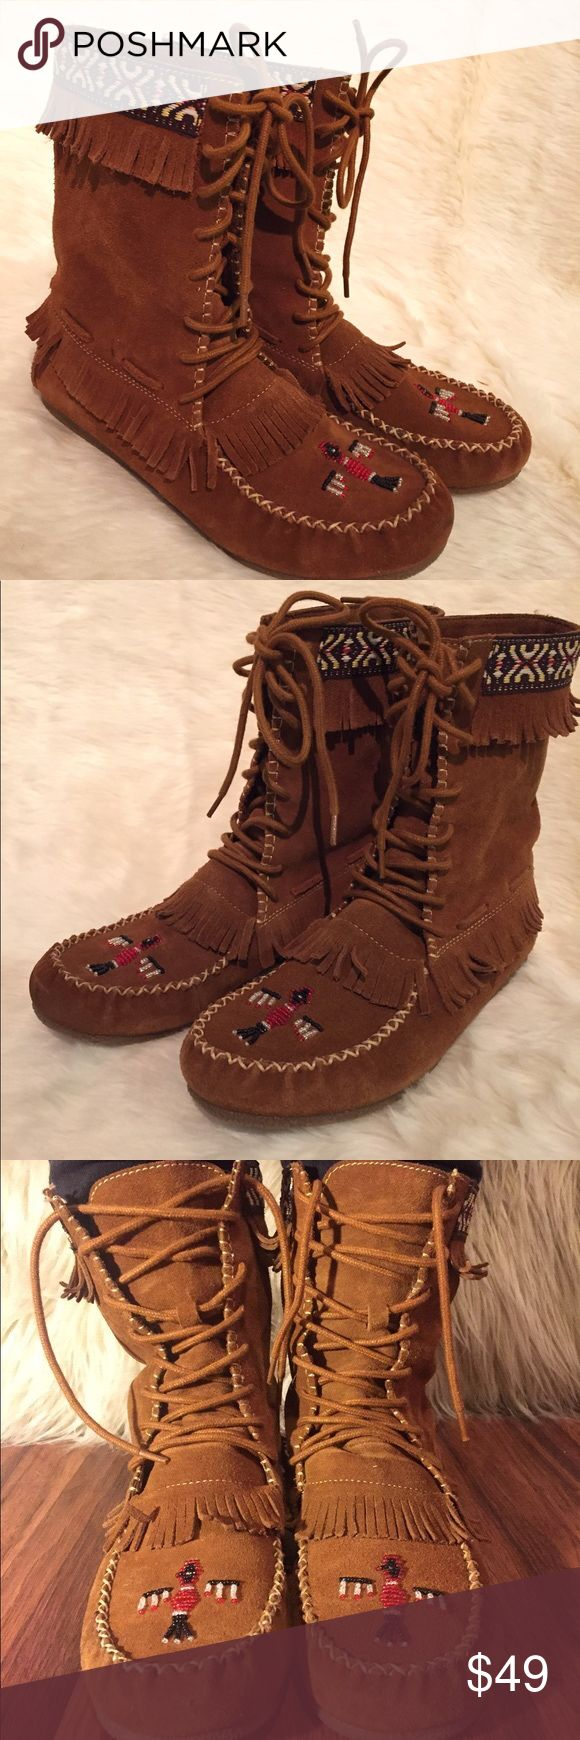 Minnetonka Thunderbird beaded moccasin boots Beautiful suede leather and beaded bird made these moccasins a must have. Lace up front, fringe, cross cross stitching, and detailed embroidery lining top. Quality design. These boots are in good condition and have been well cared for. Worn less than a handful of times. Unfortunately they are just a little big for me (I'm usually a 7.5/8, but my size was sold out).  Style number 8466 Size: 8.5 Color: dusty brown  Check out my closet for more great…